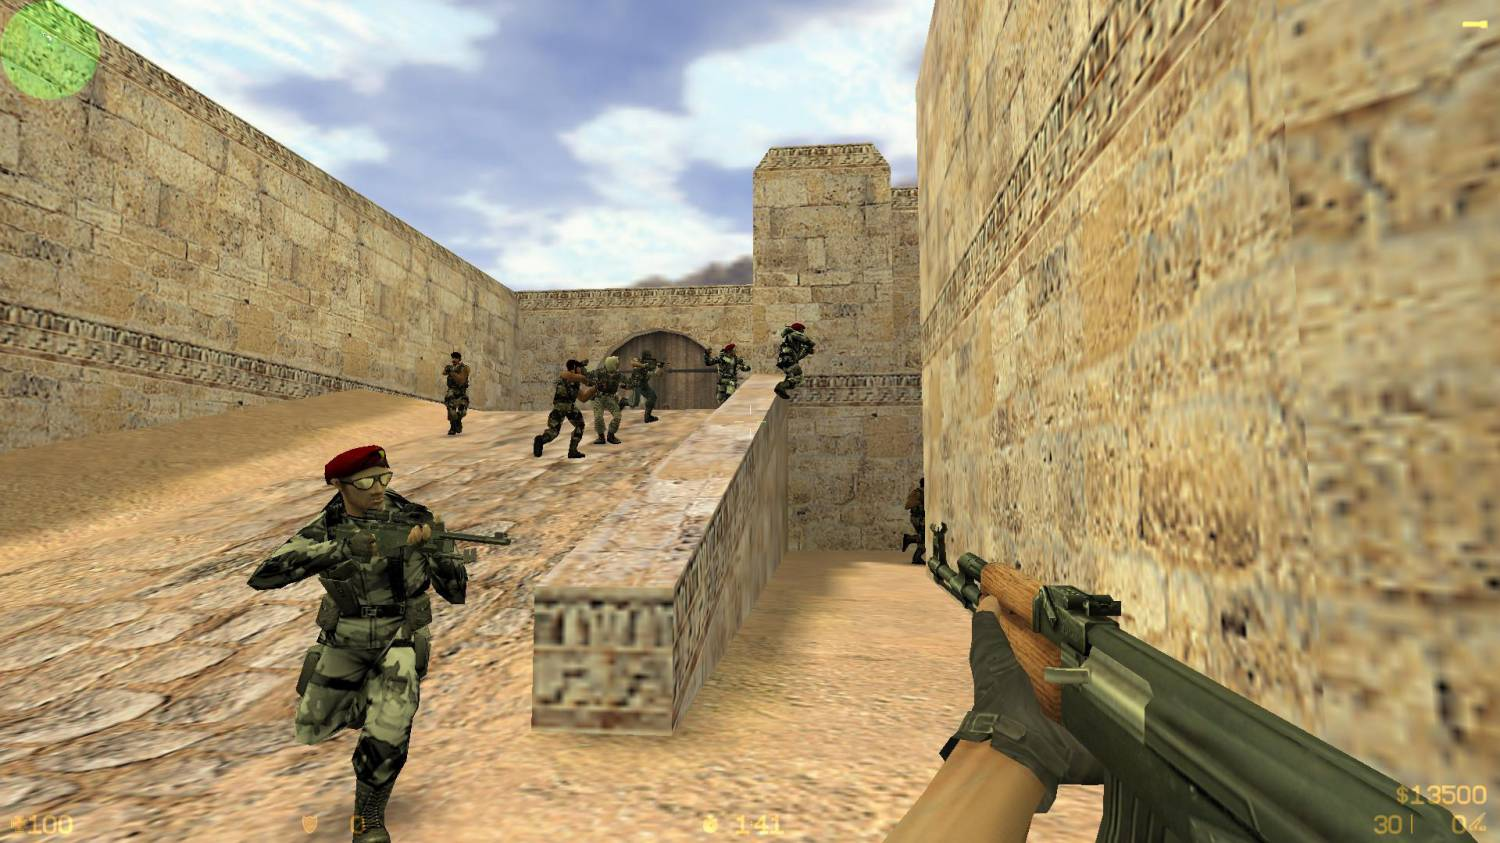 Counter-strike 1. 6 steam version update 2014 [rus] скачать.